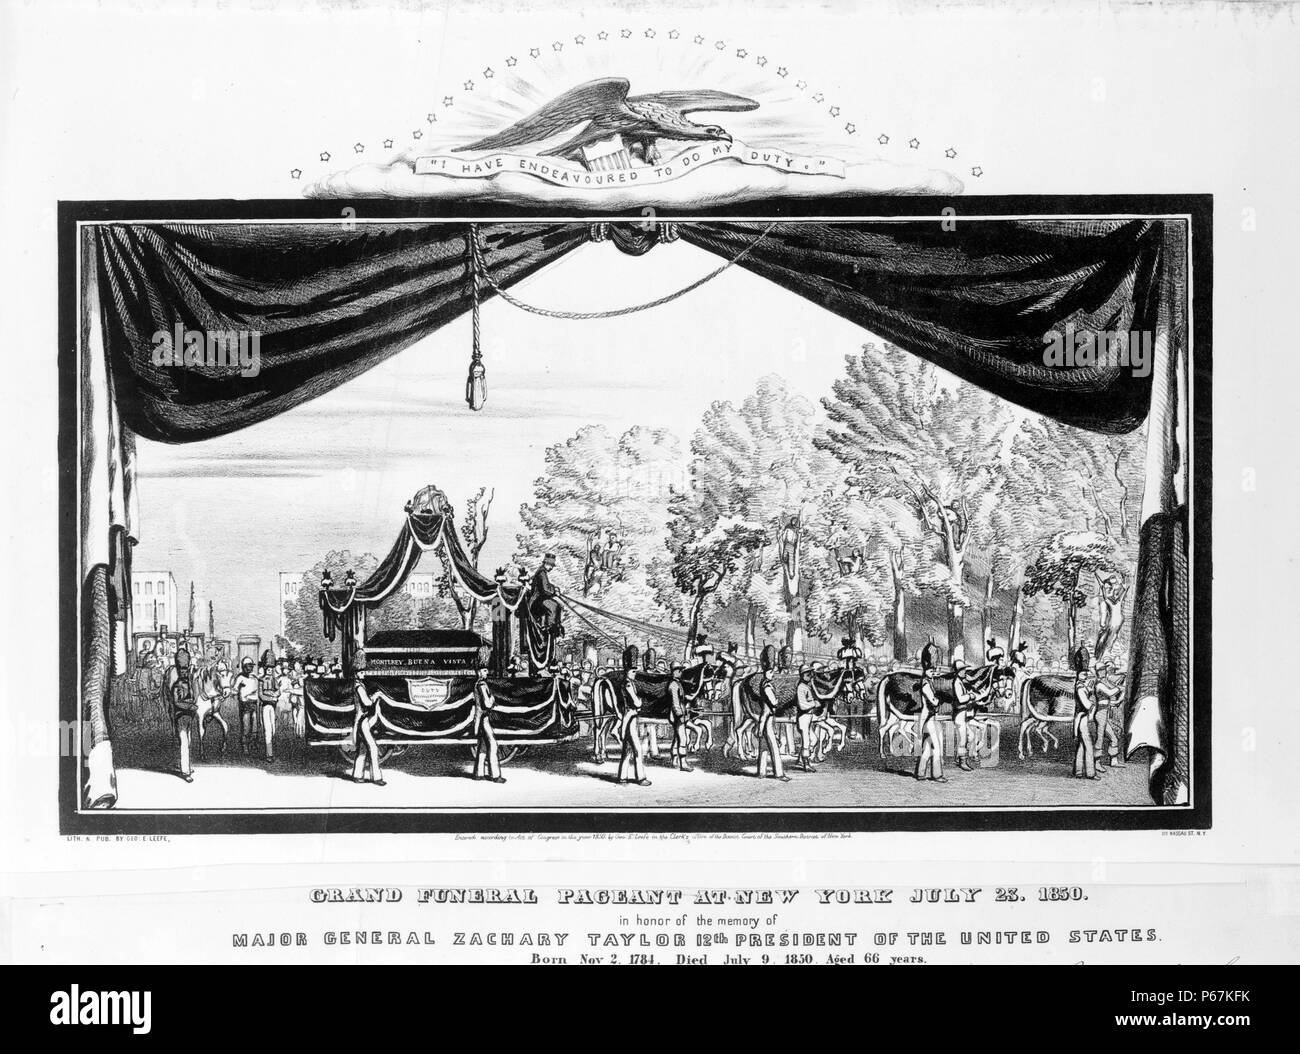 "Grand funeral pageant at New York July 23, 1850, in honour of the memory of Major General Zachary Taylor 12th president of the United States' Funeral procession for Zachary Taylor, with coffin on elaborately decorated wagon, seen through curtains, perhaps on a stage; eagle above bears banner, ""I have endeavoured to do my duty."" Stock Photo"